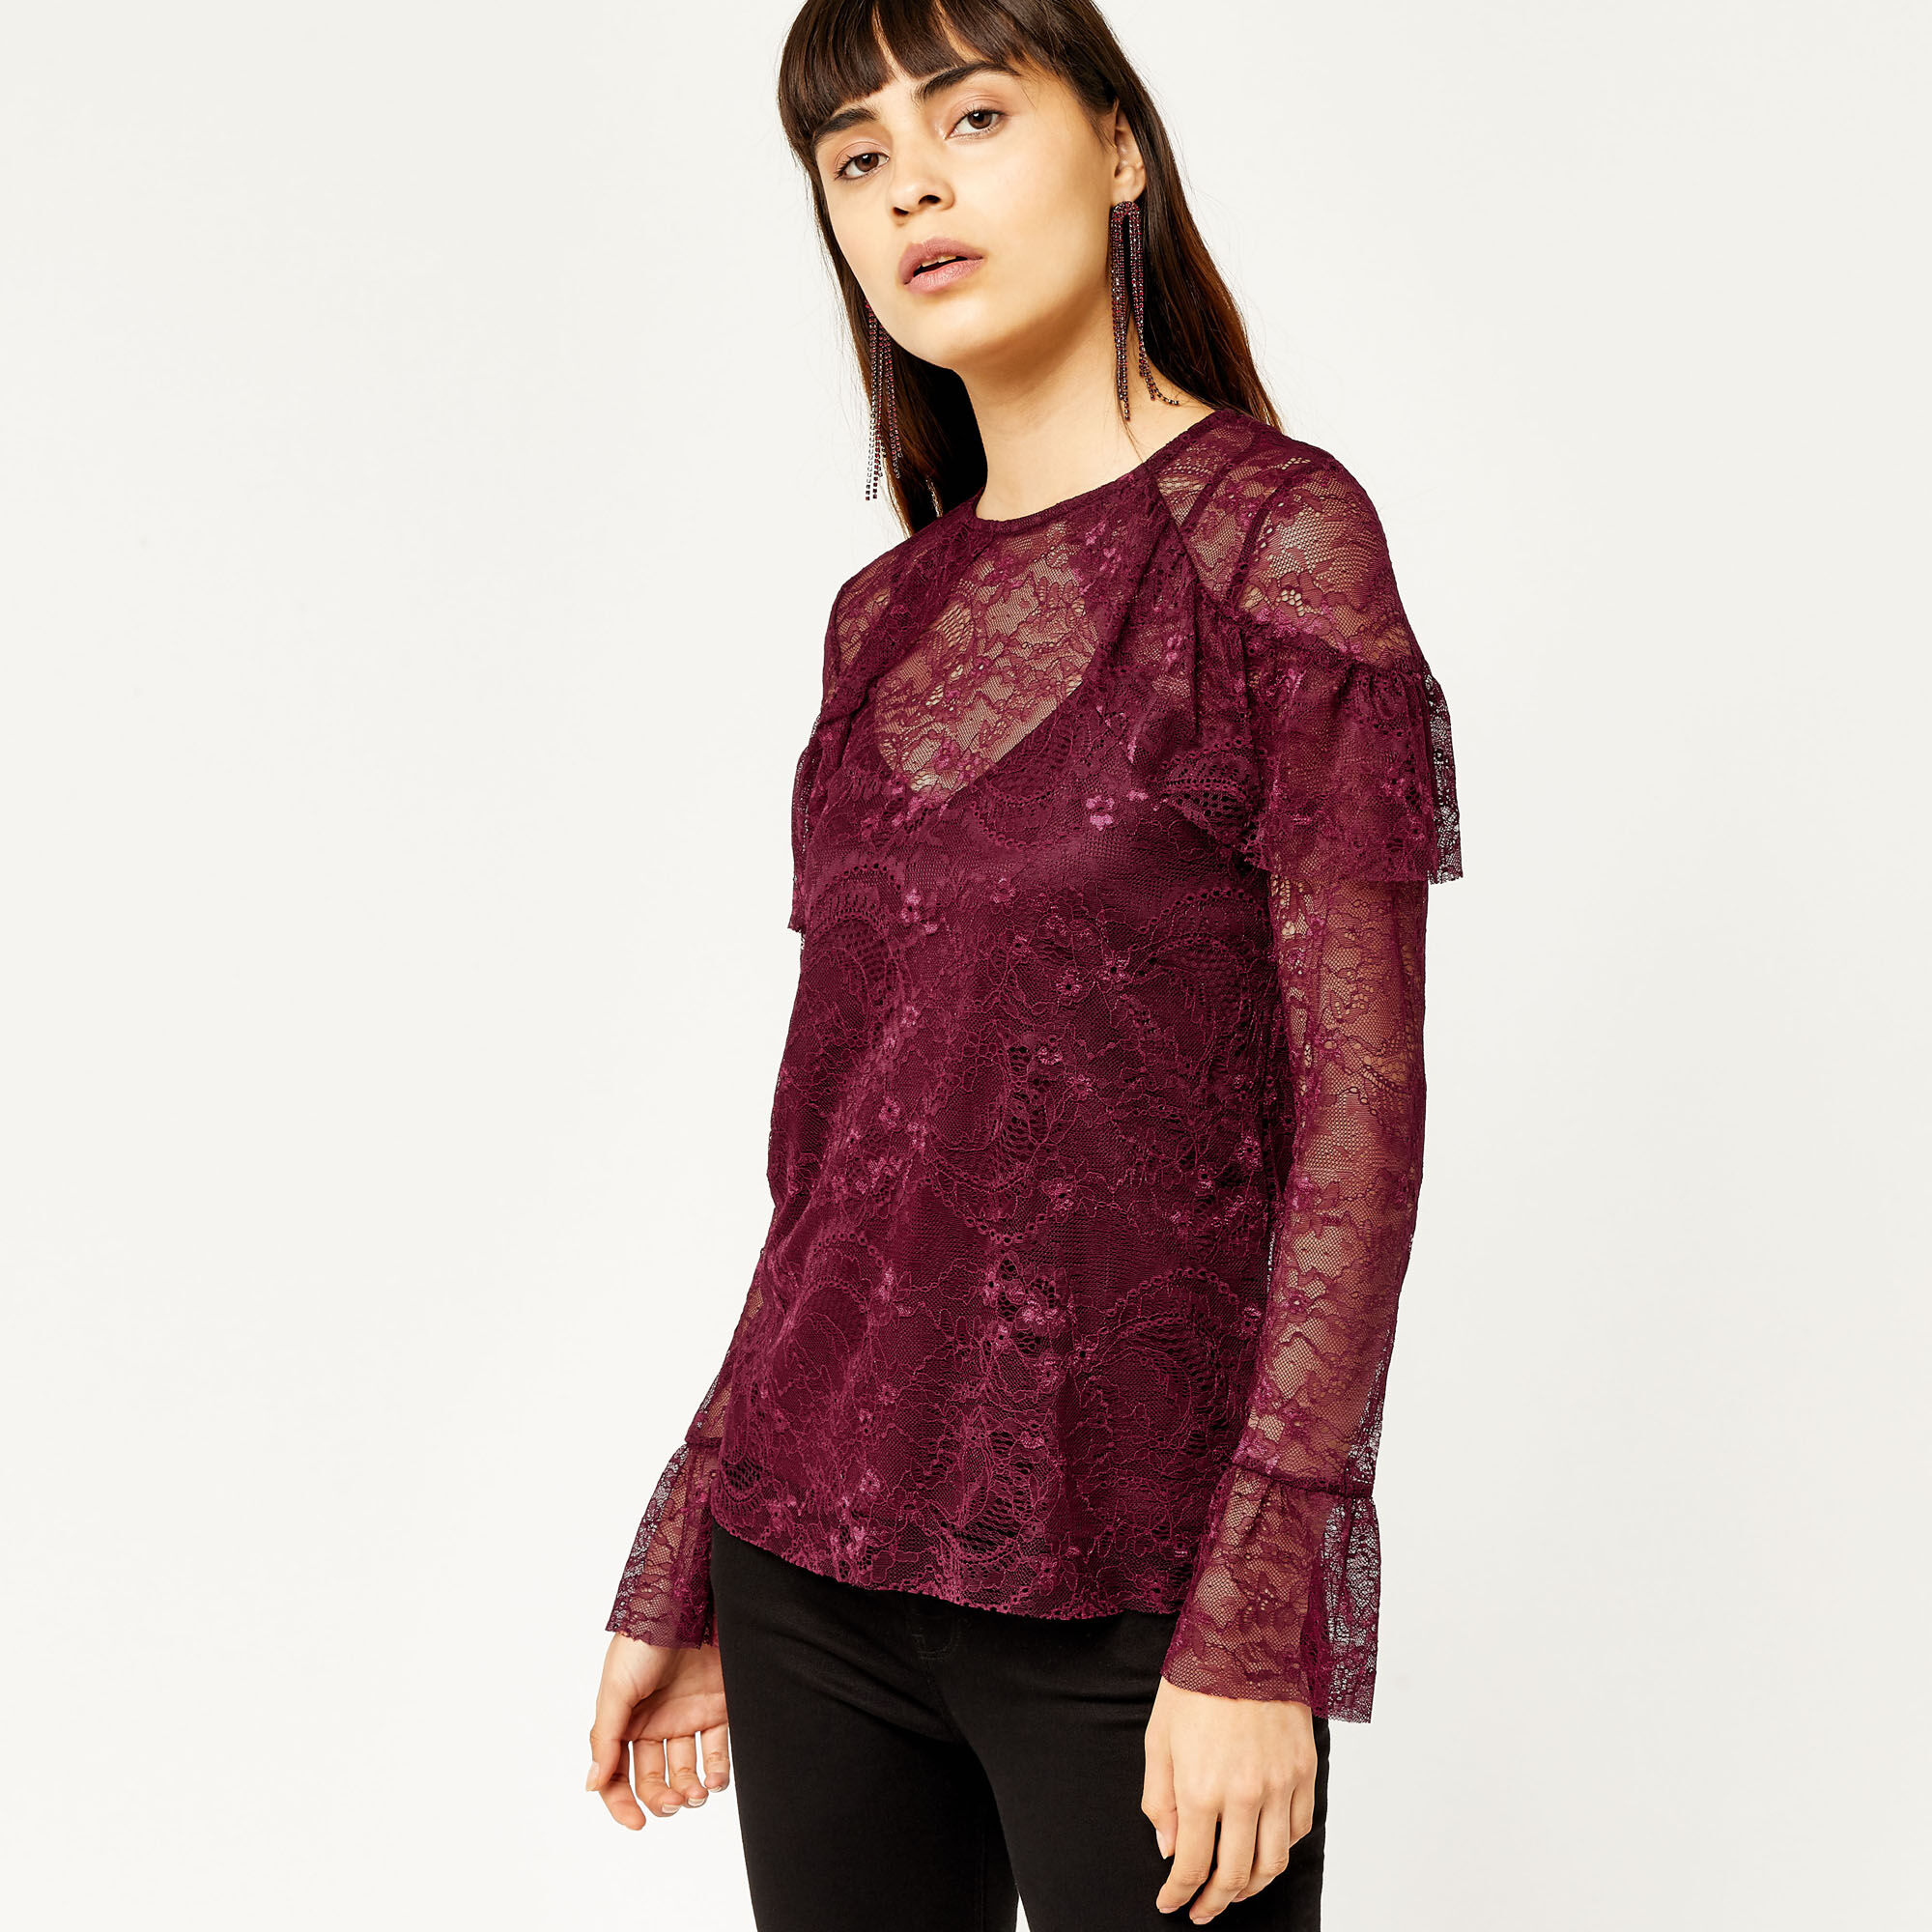 Warehouse, CHANTILLY LACE TOP Dark Red 1